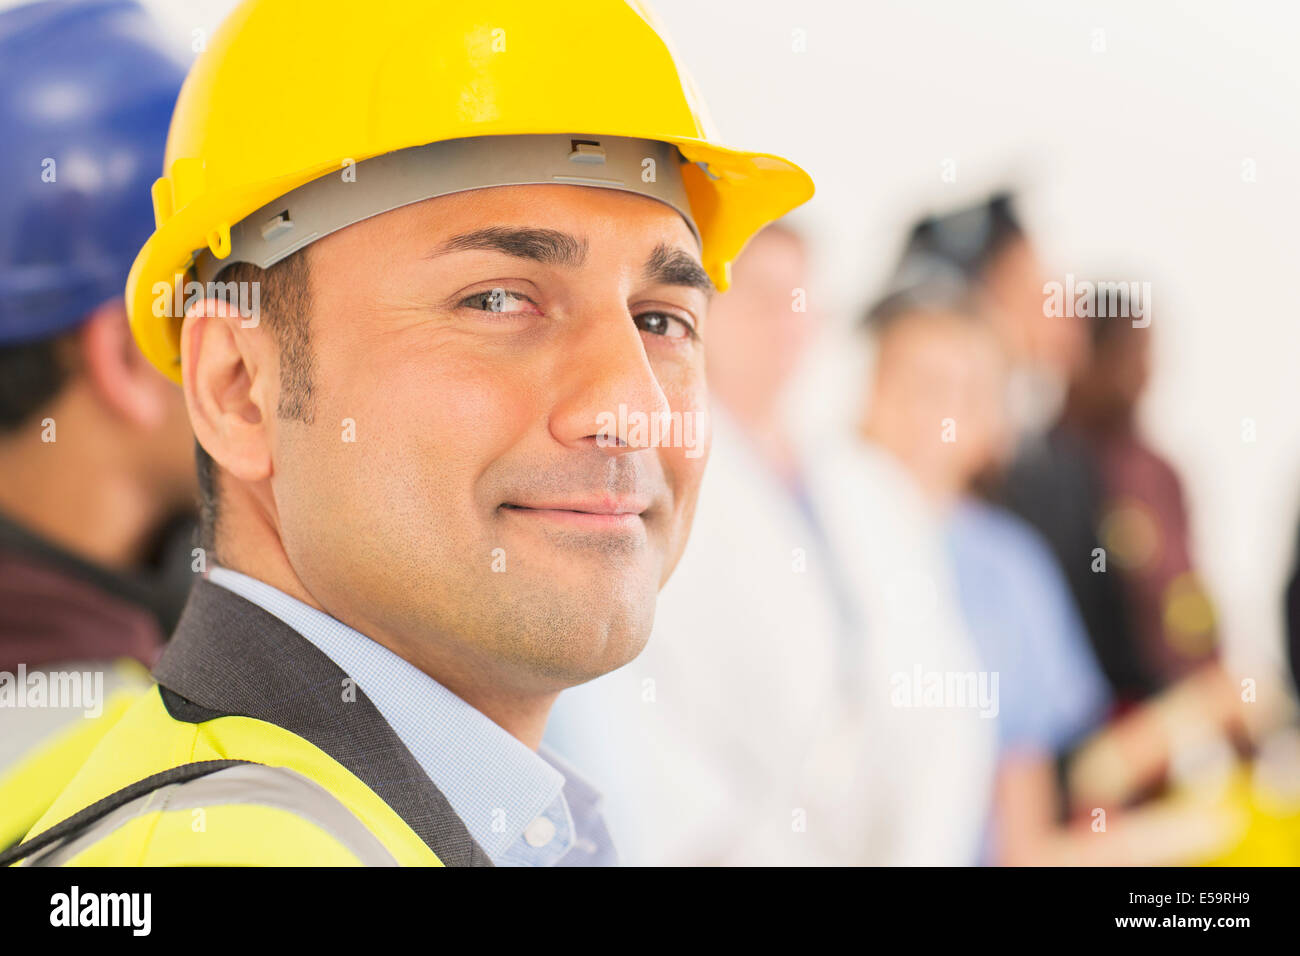 Portrait of confident construction worker - Stock Image